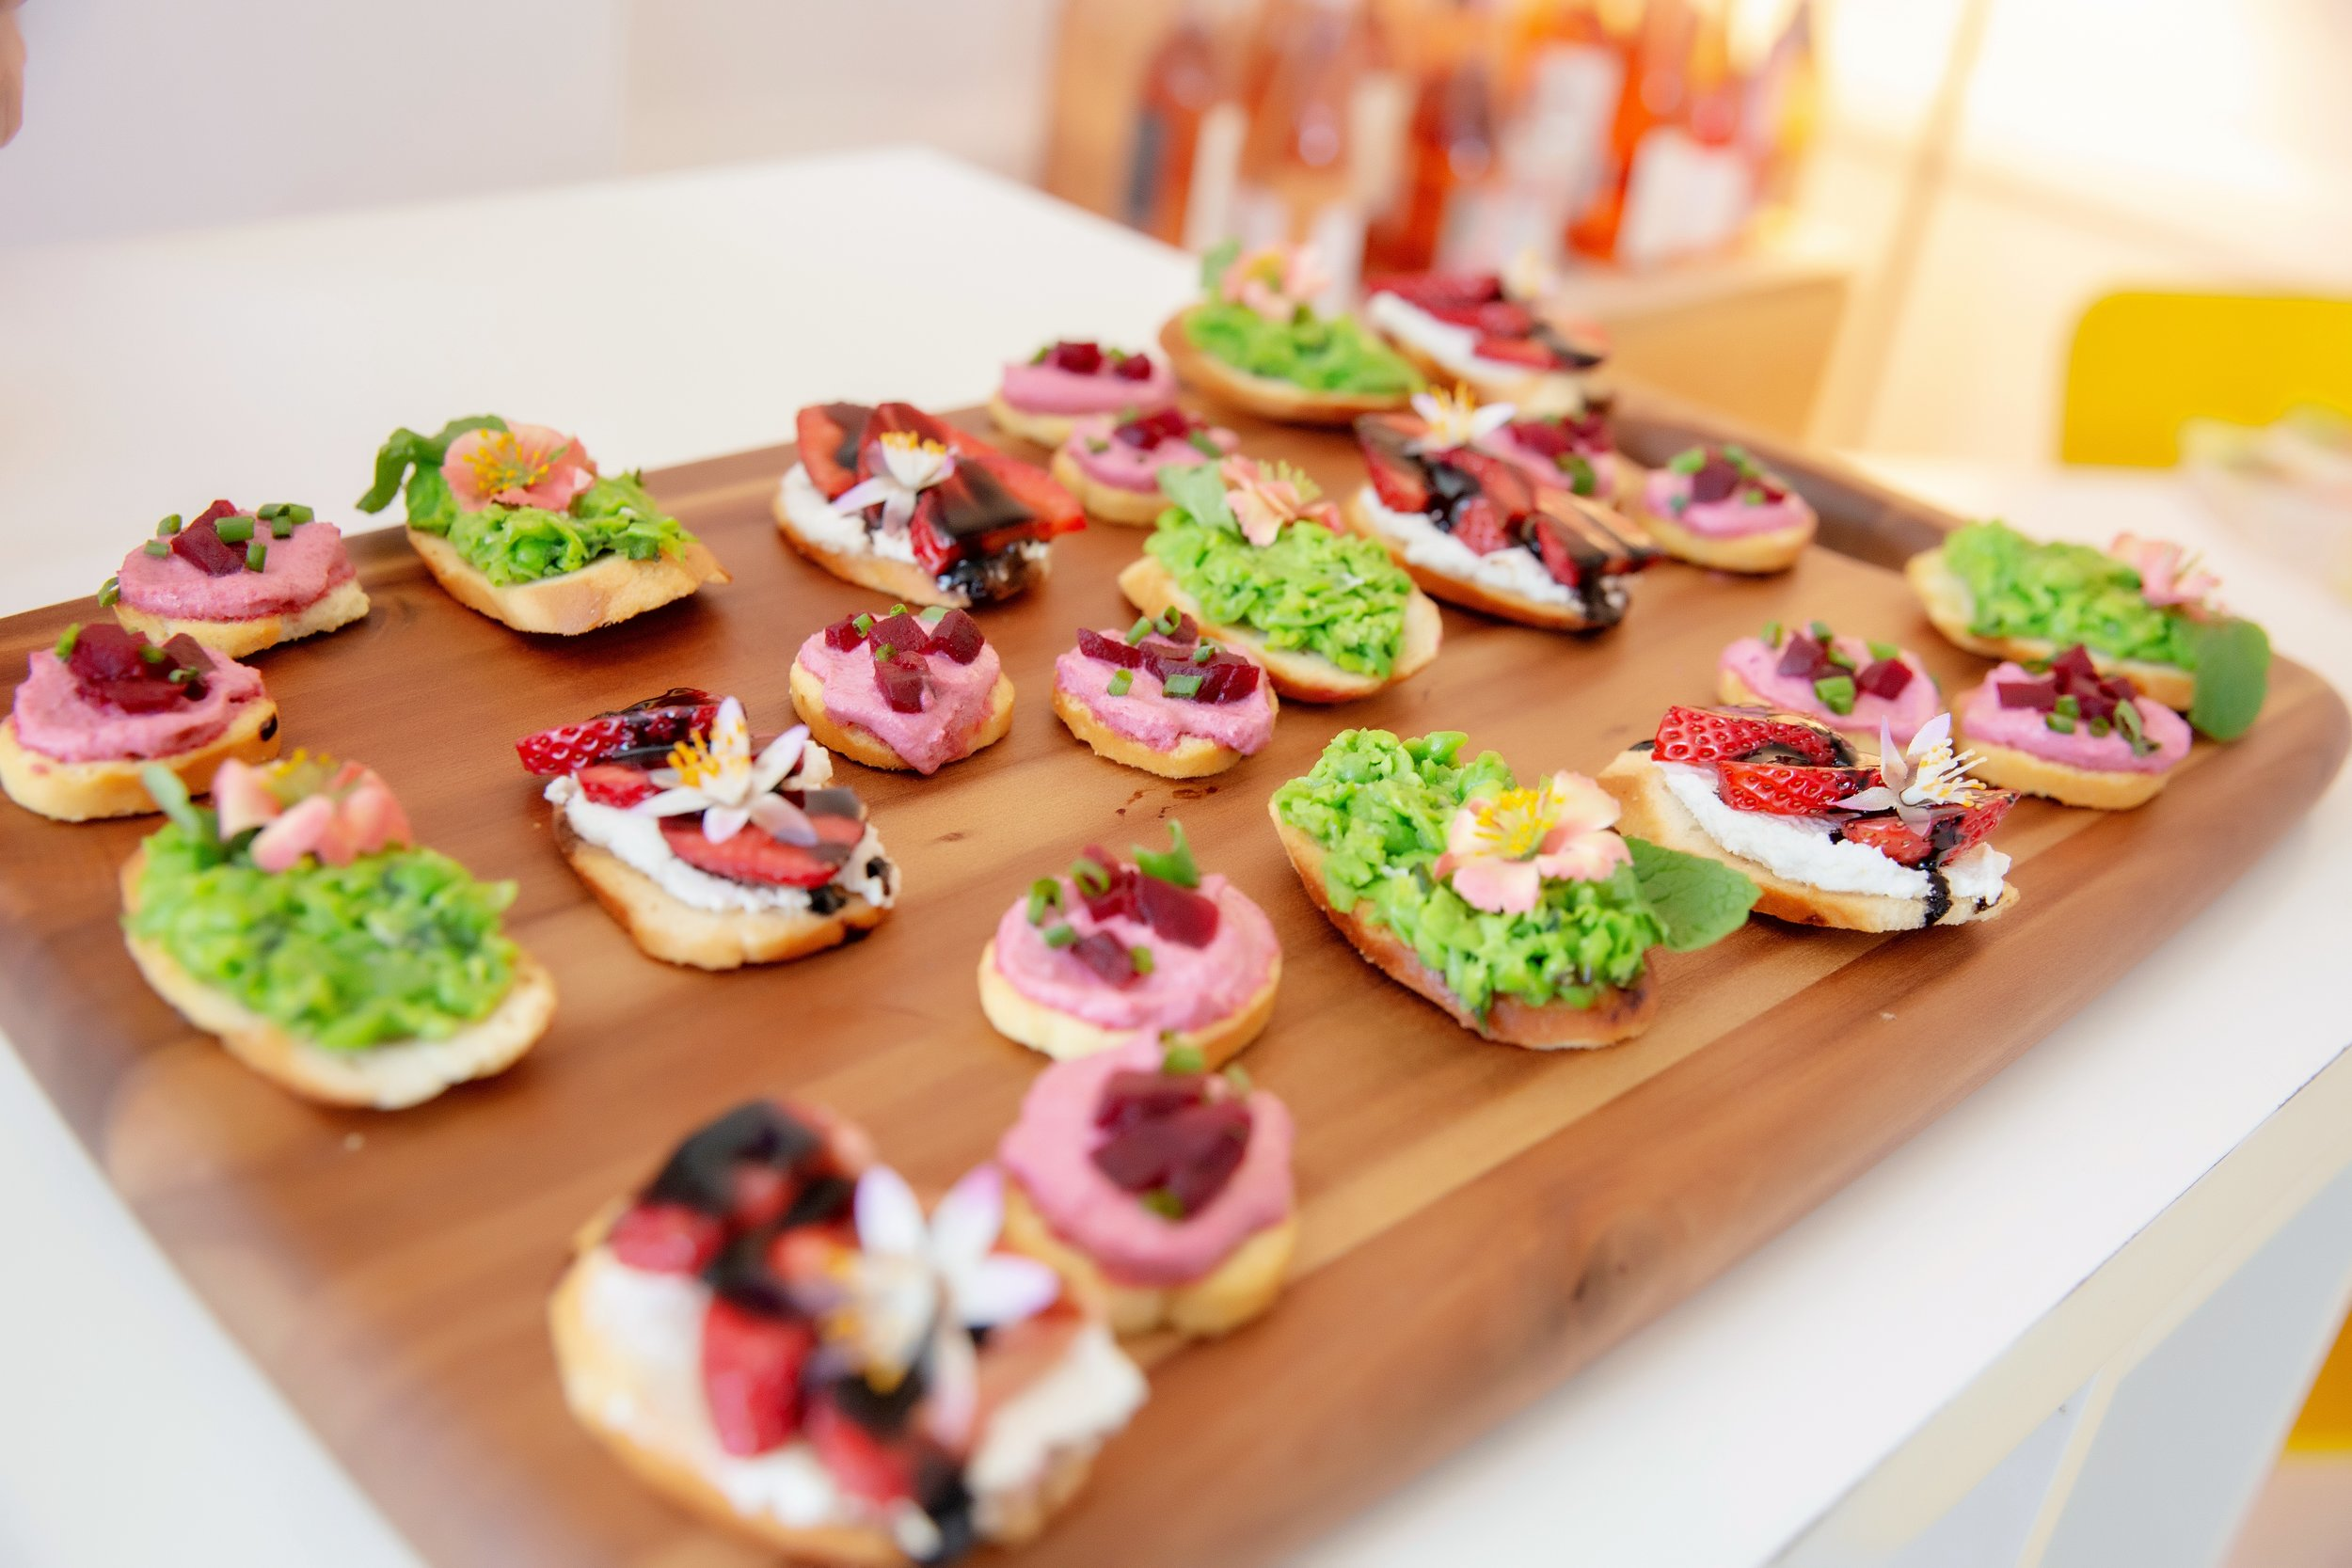 Sweet pea and mint crostini, beet and goat cheese crostini, strawberry balsamic toasts